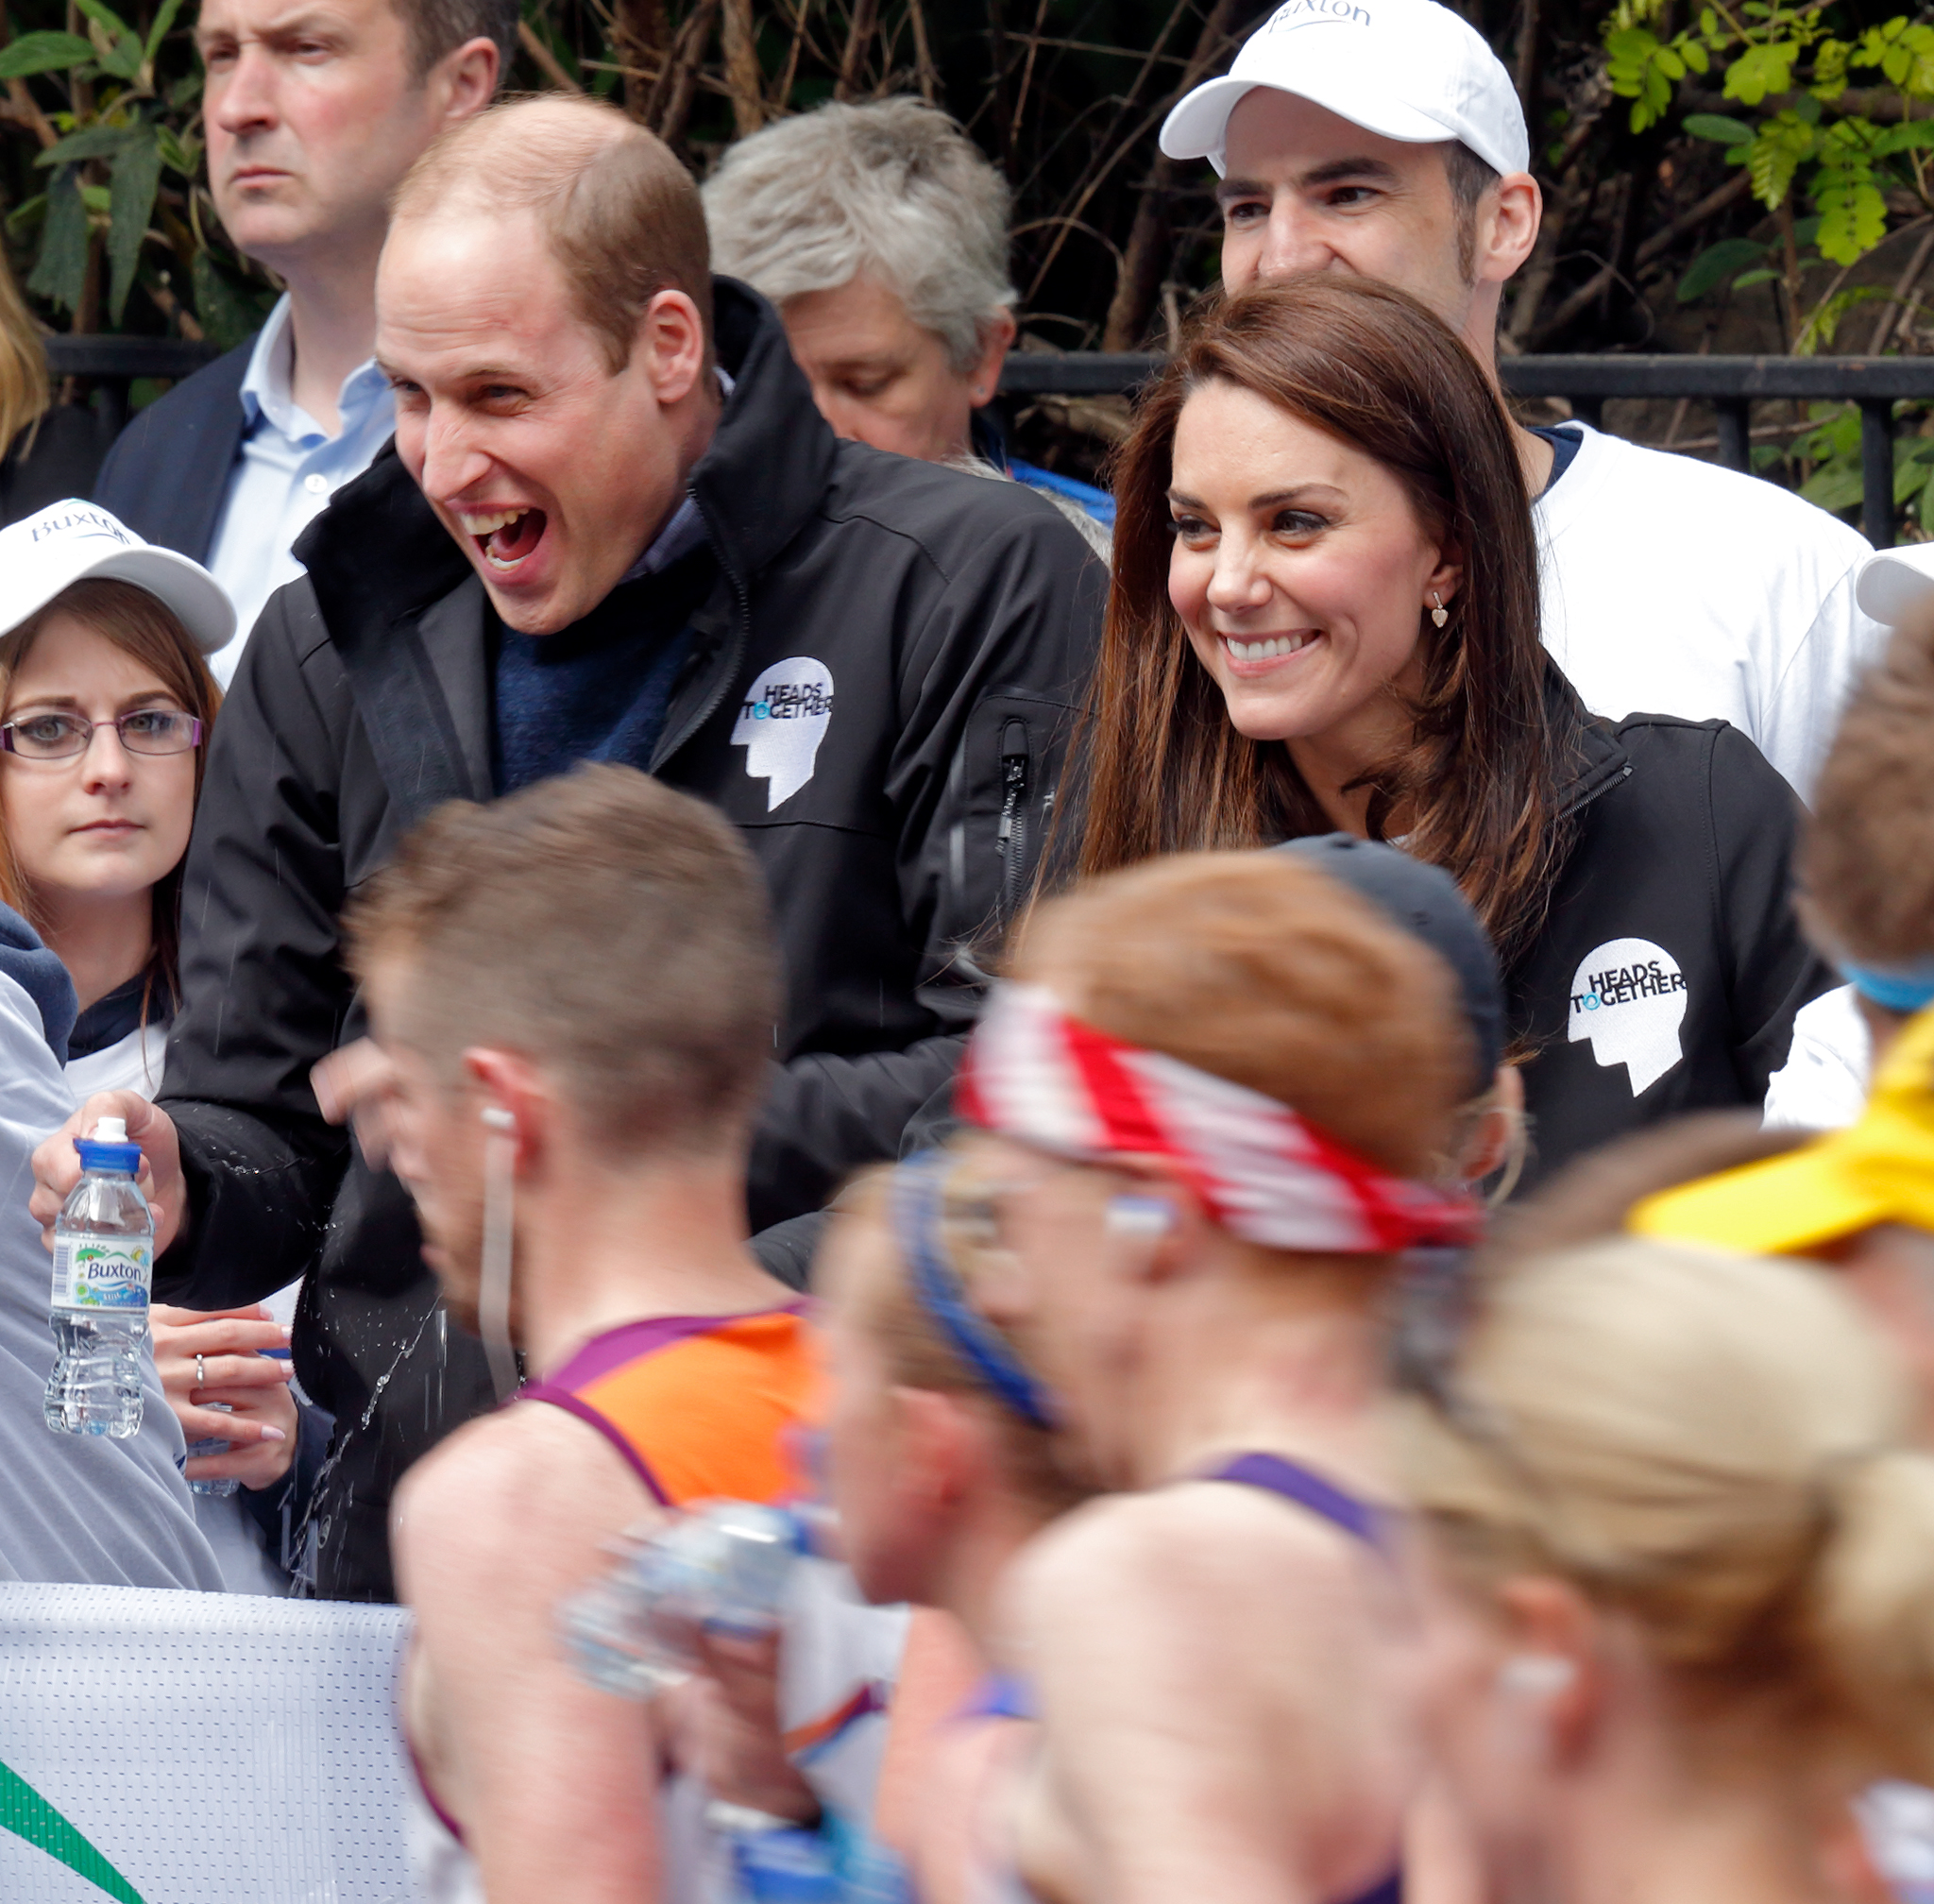 LONDON, UNITED KINGDOM - APRIL 23: (EMBARGOED FOR PUBLICATION IN UK NEWSPAPERS UNTIL 48 HOURS AFTER CREATE DATE AND TIME) Prince William, Duke of Cambridge is squirted with water as he & Catherine, Duchess of Cambridge hand out water to runners taking part in the 2017 Virgin Money London Marathon on April 23, 2017 in London, England. The Heads Together mental heath campaign, spearheaded by The Duke & Duchess of Cambridge and Prince Harry, is the marathon's 2017 Charity of the Year. (Photo by Max Mumby/Indigo/Getty Images)